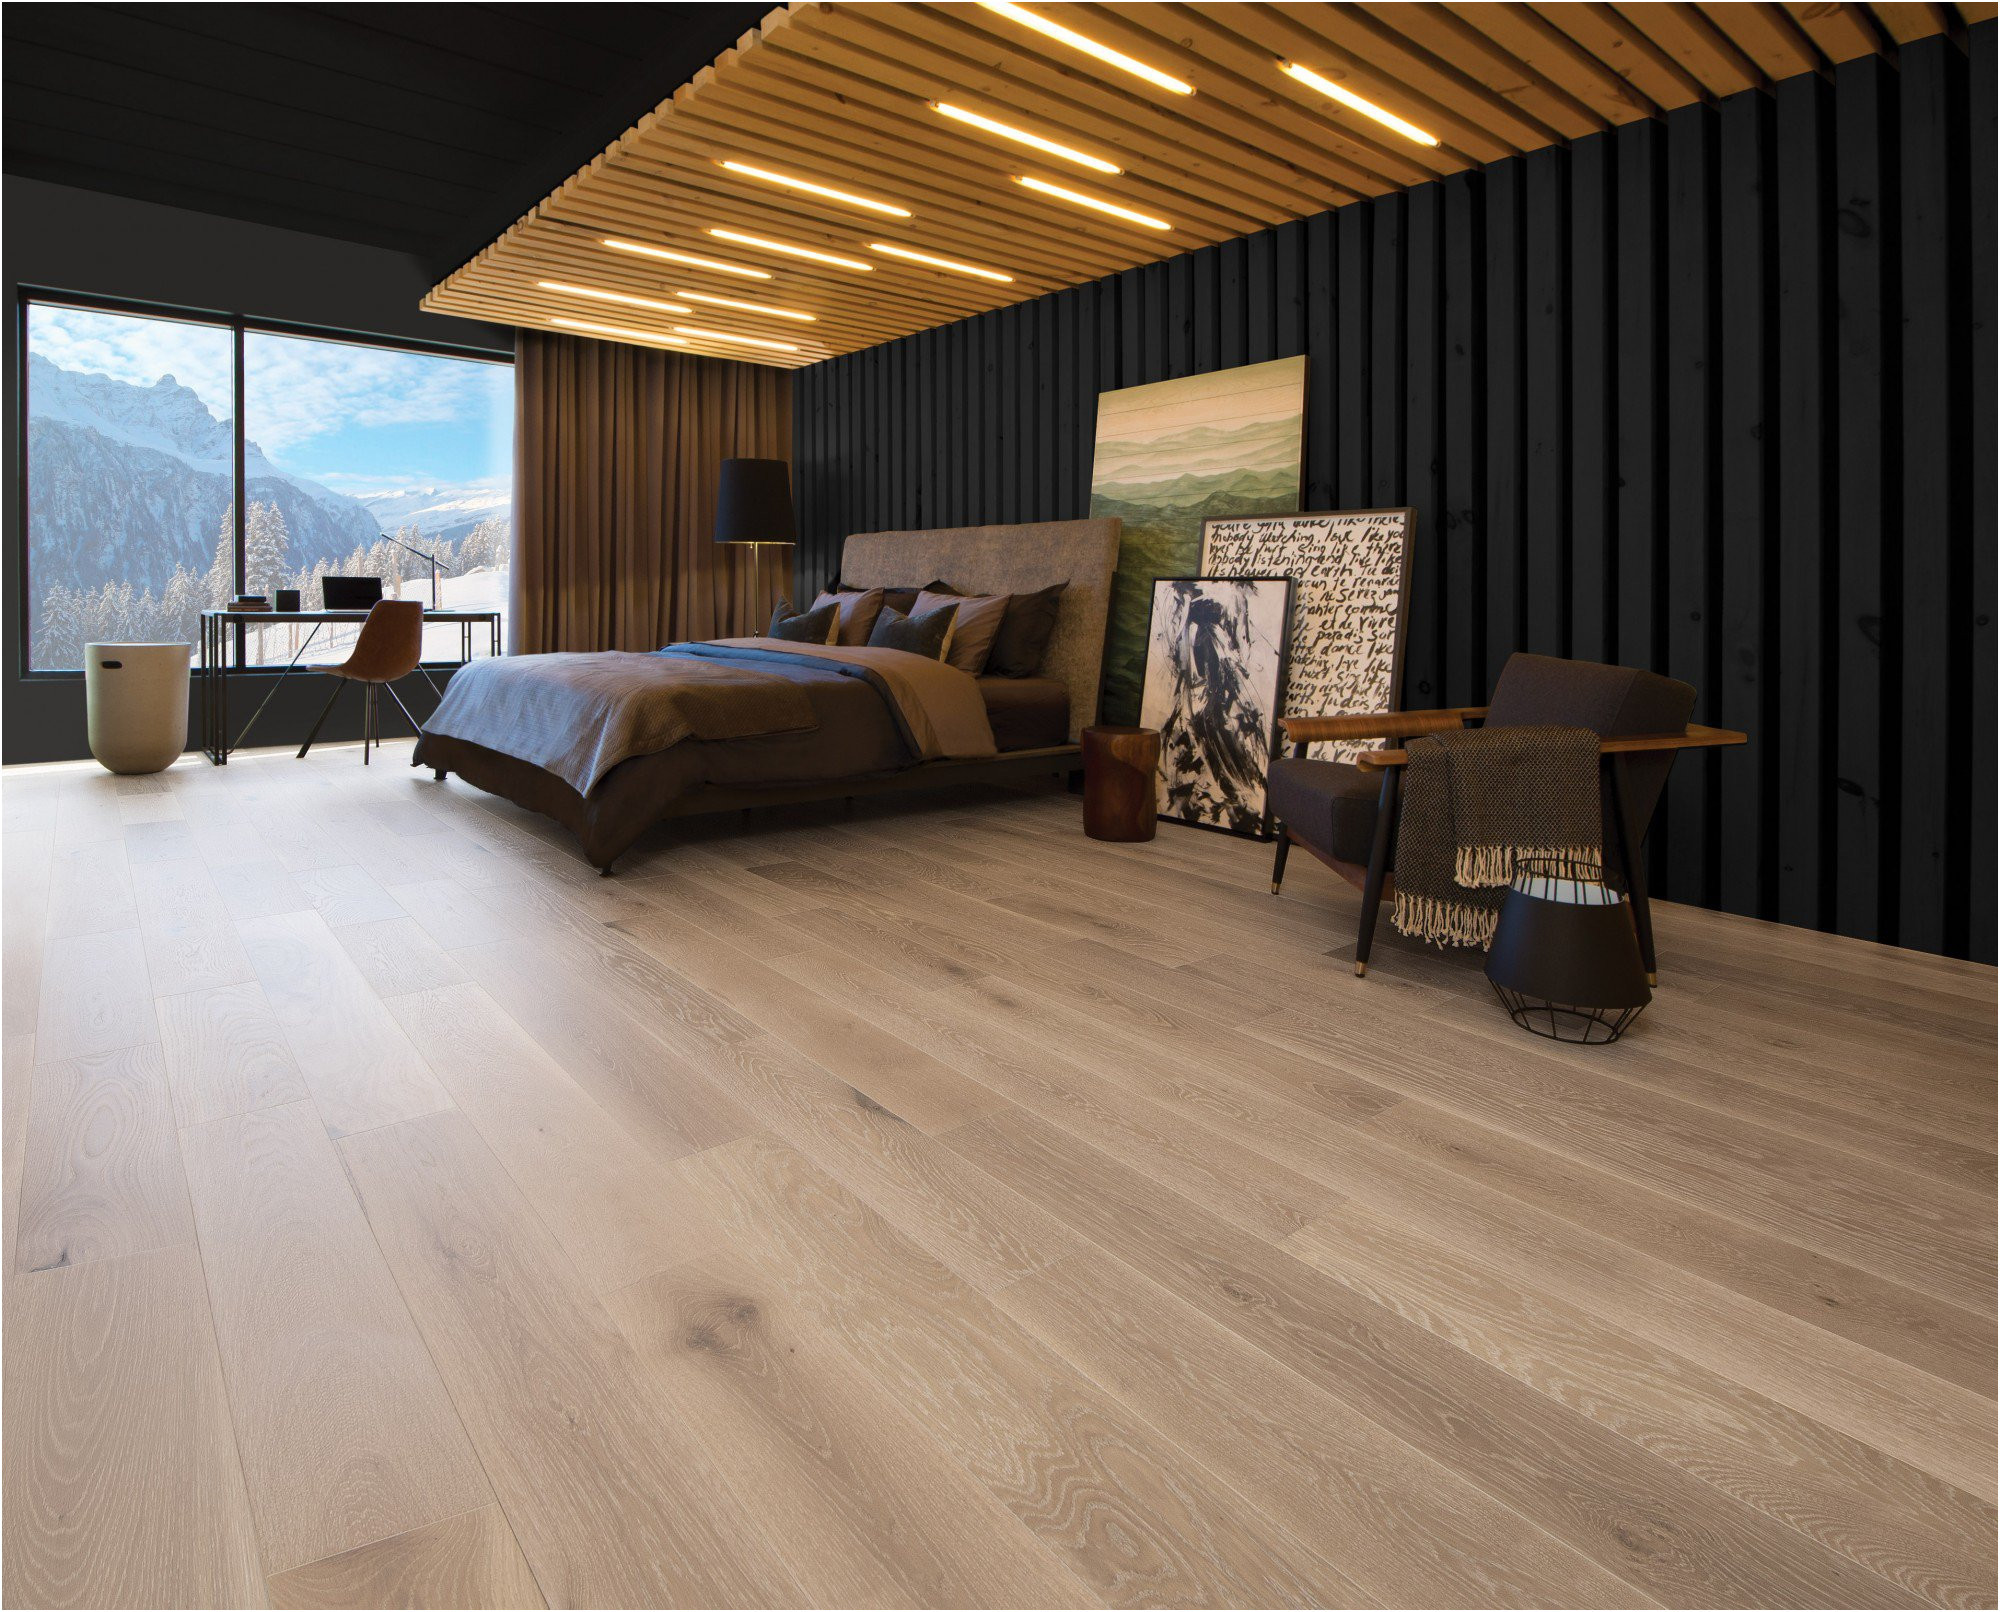 mirage hardwood flooring prices canada of 14 briliant carpet stair treads lowes canada interior stairs in carpet stair treads lowes canada fresh mirage floors the world s finest and best hardwood floors